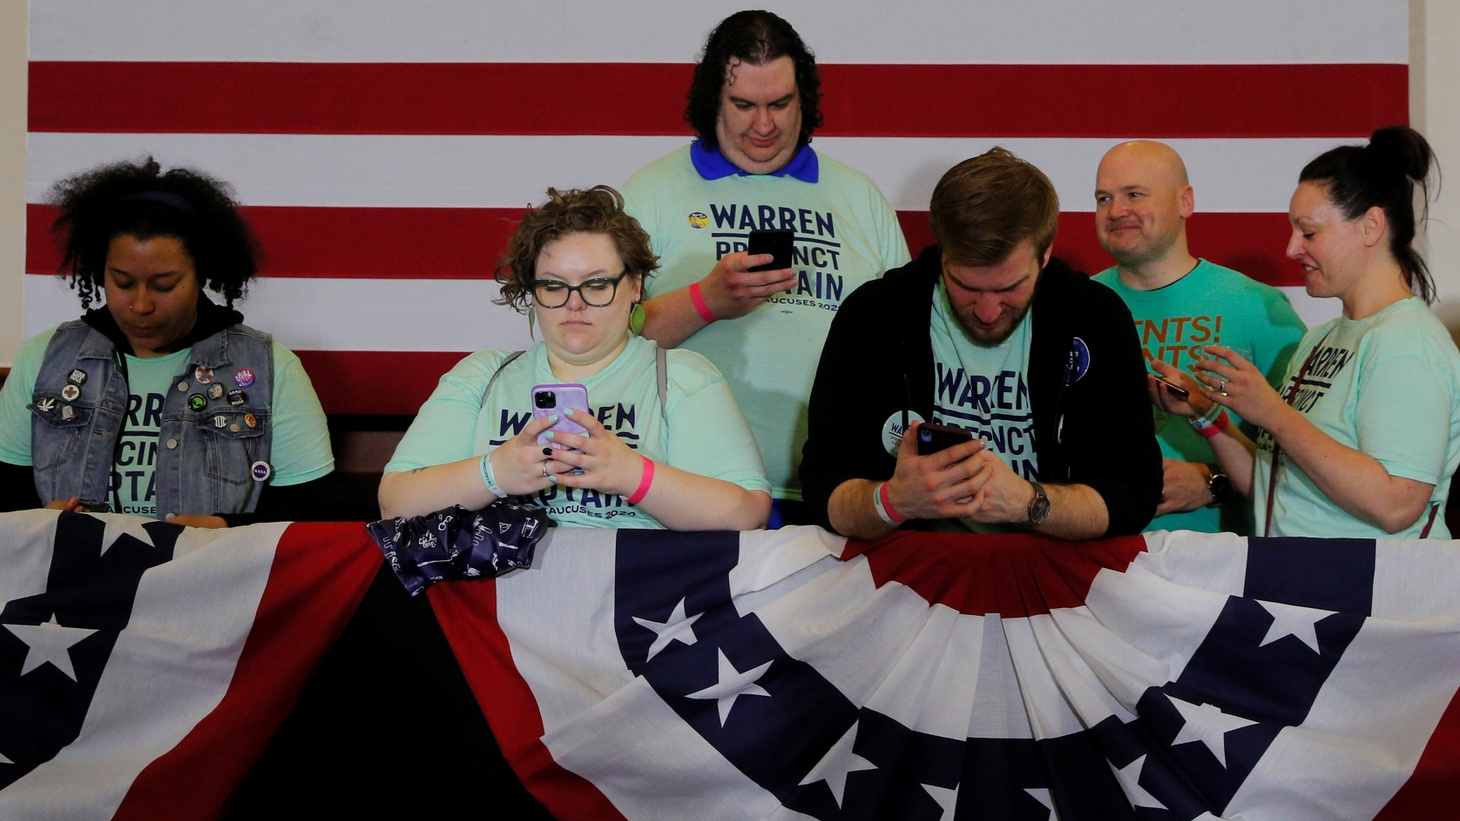 Supporters of Democratic 2020 U.S. presidential candidate and U.S. Senator Elizabeth Warren (D-MA) look at their mobile phones before she speaks at her Iowa Caucus rally in Des Moines, Iowa, U.S., February 3, 2020. Picture taken February 3, 2020.